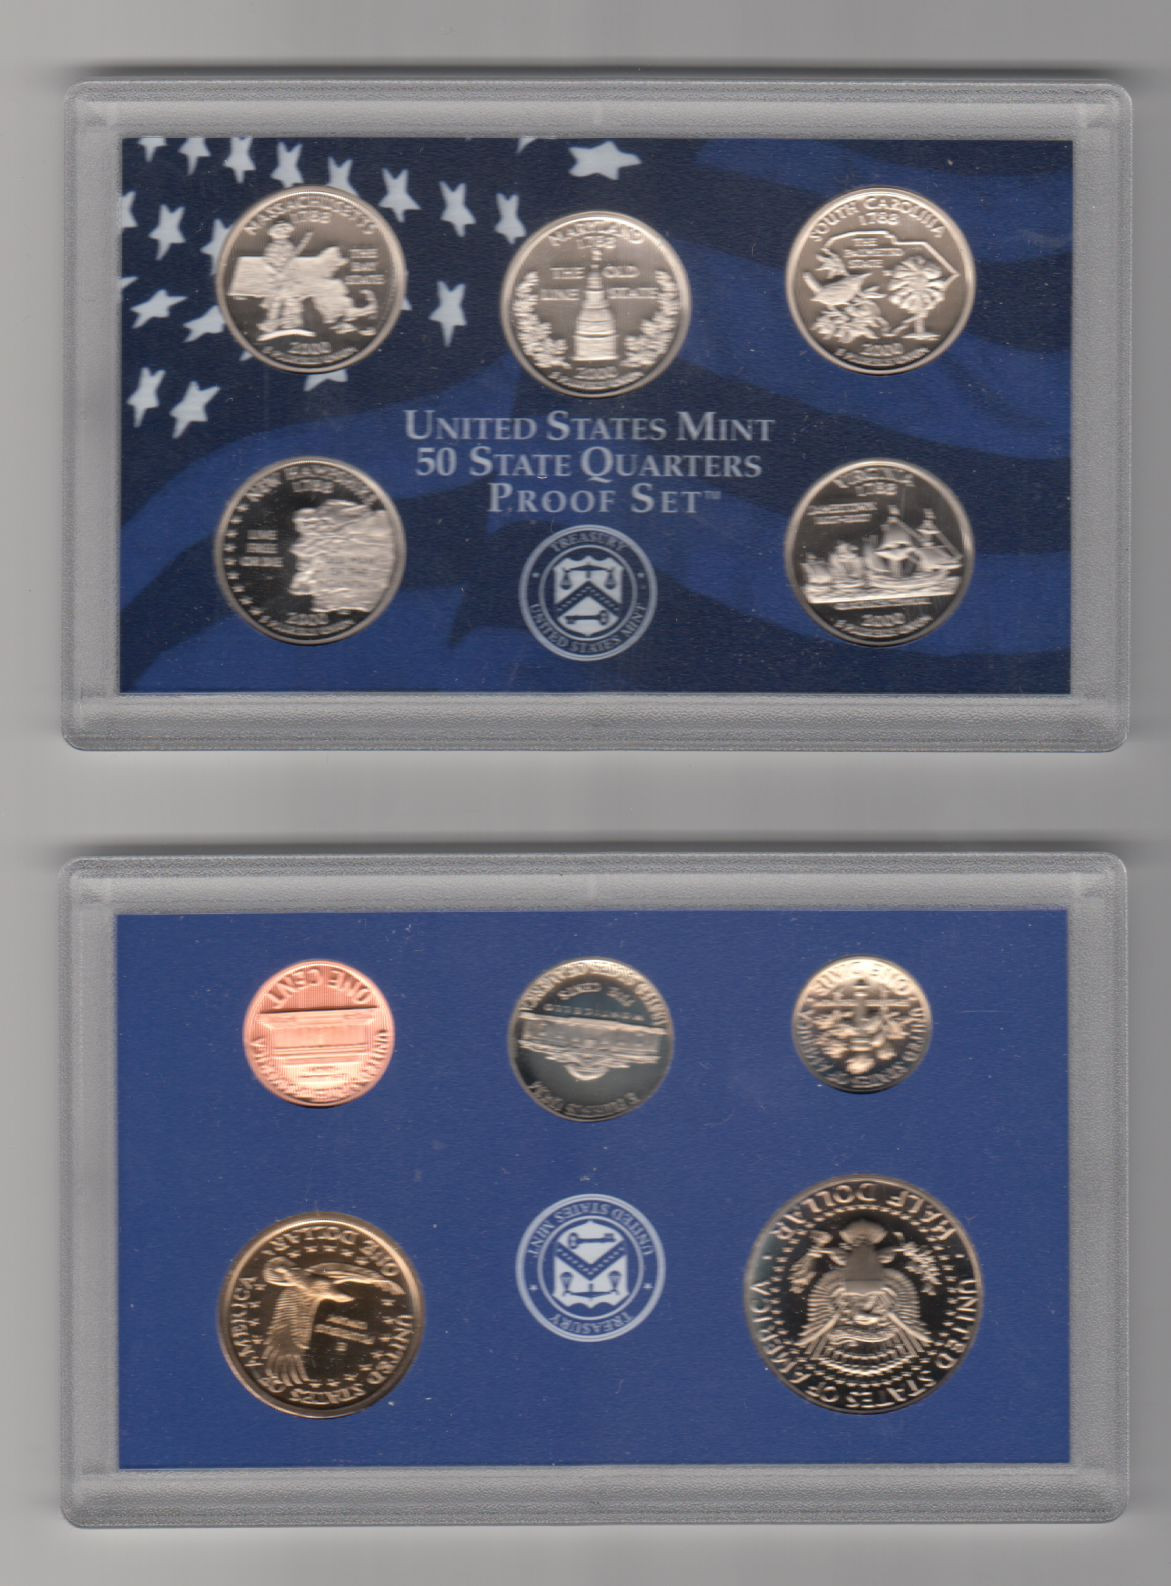 50 State Quarters Elegant 10 Coins 50 State Quarters Proof Set Us Mint 2000 Buyer Of Great 48 Images 50 State Quarters